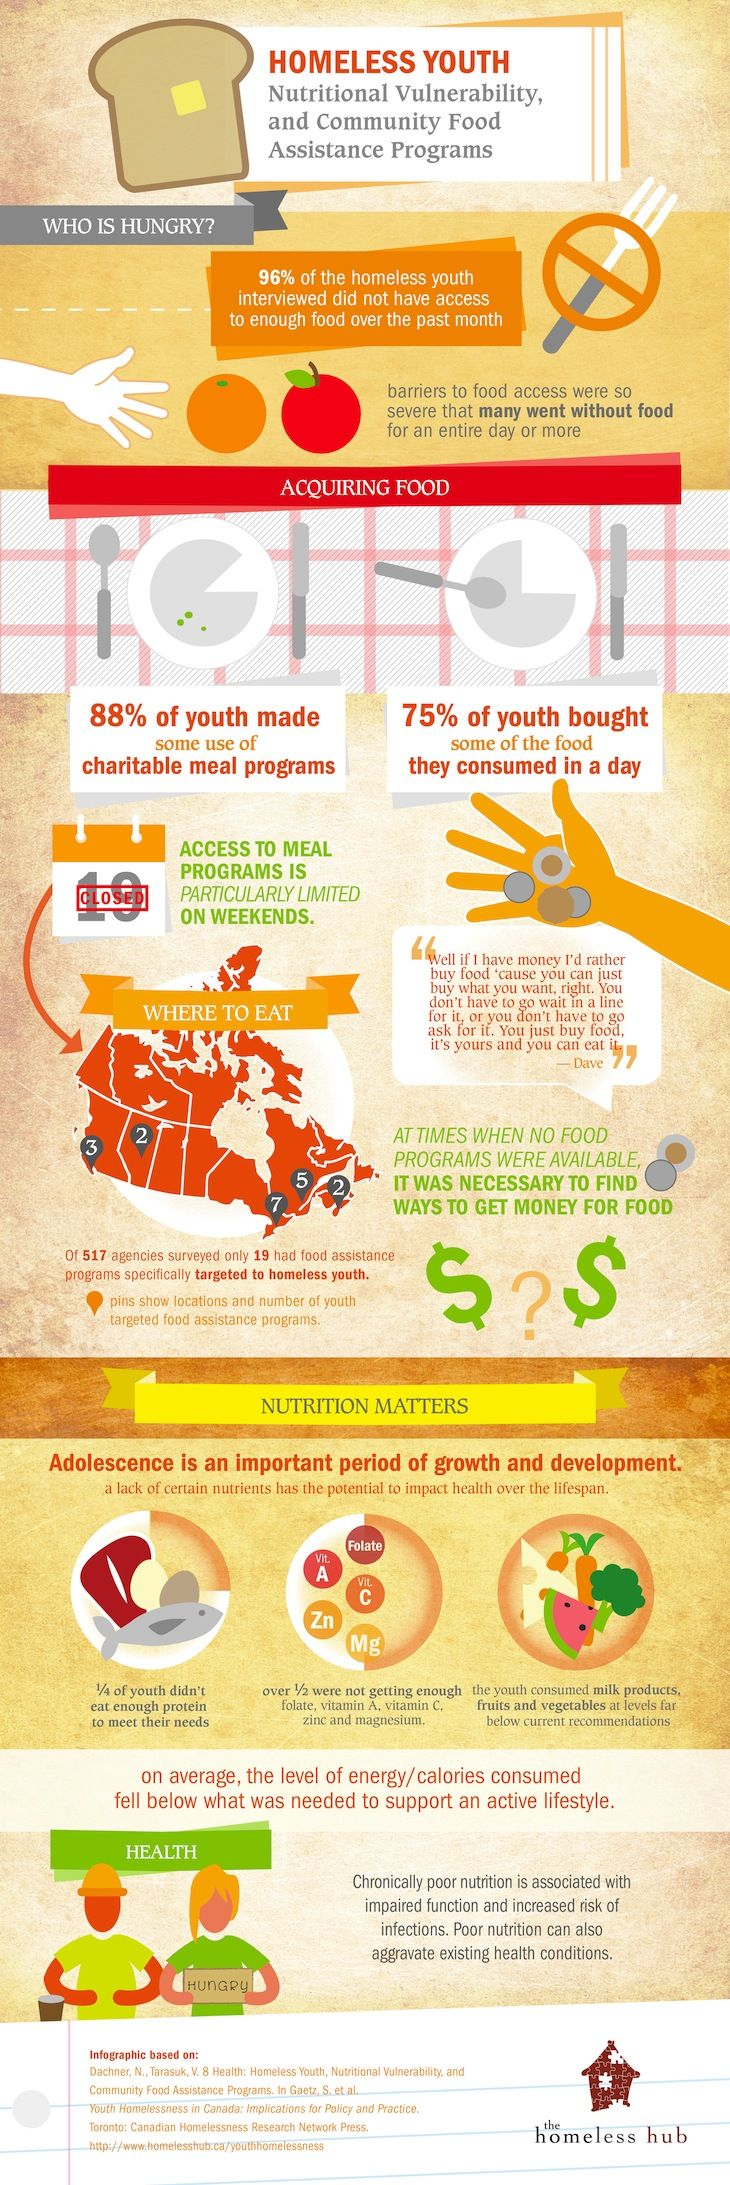 #Infographic: Homeless Youth, Nutritional Vulnerability, and Community Food Assistance Programs from @HomelessHub